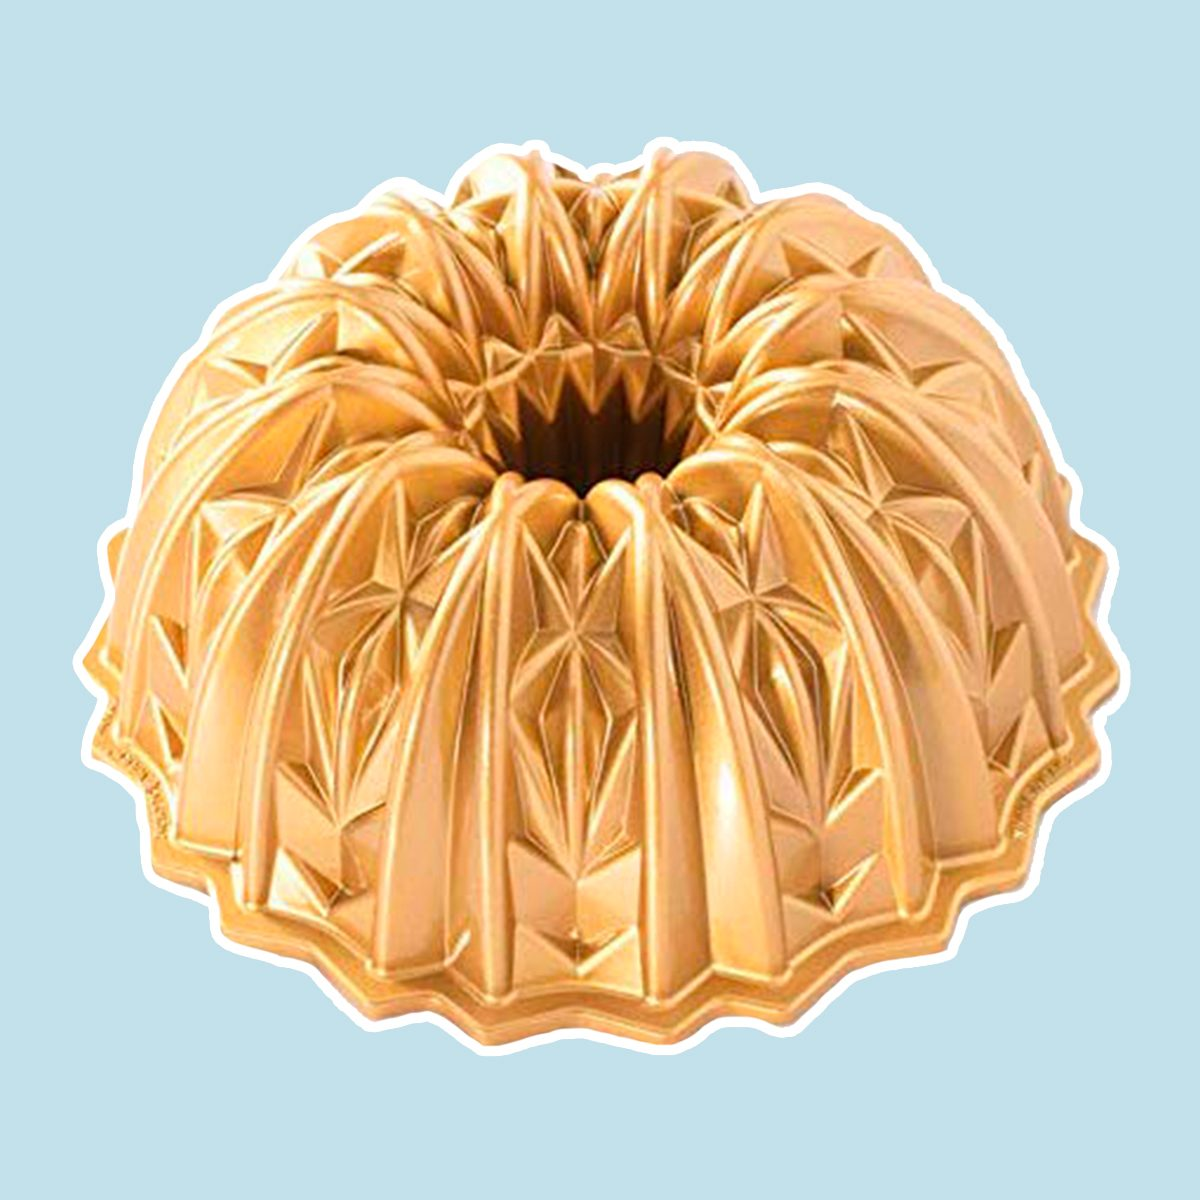 Nordic Ware 92877 Cut Crystal Cast Bundt Pan, 10 Cup Capacity, Gold